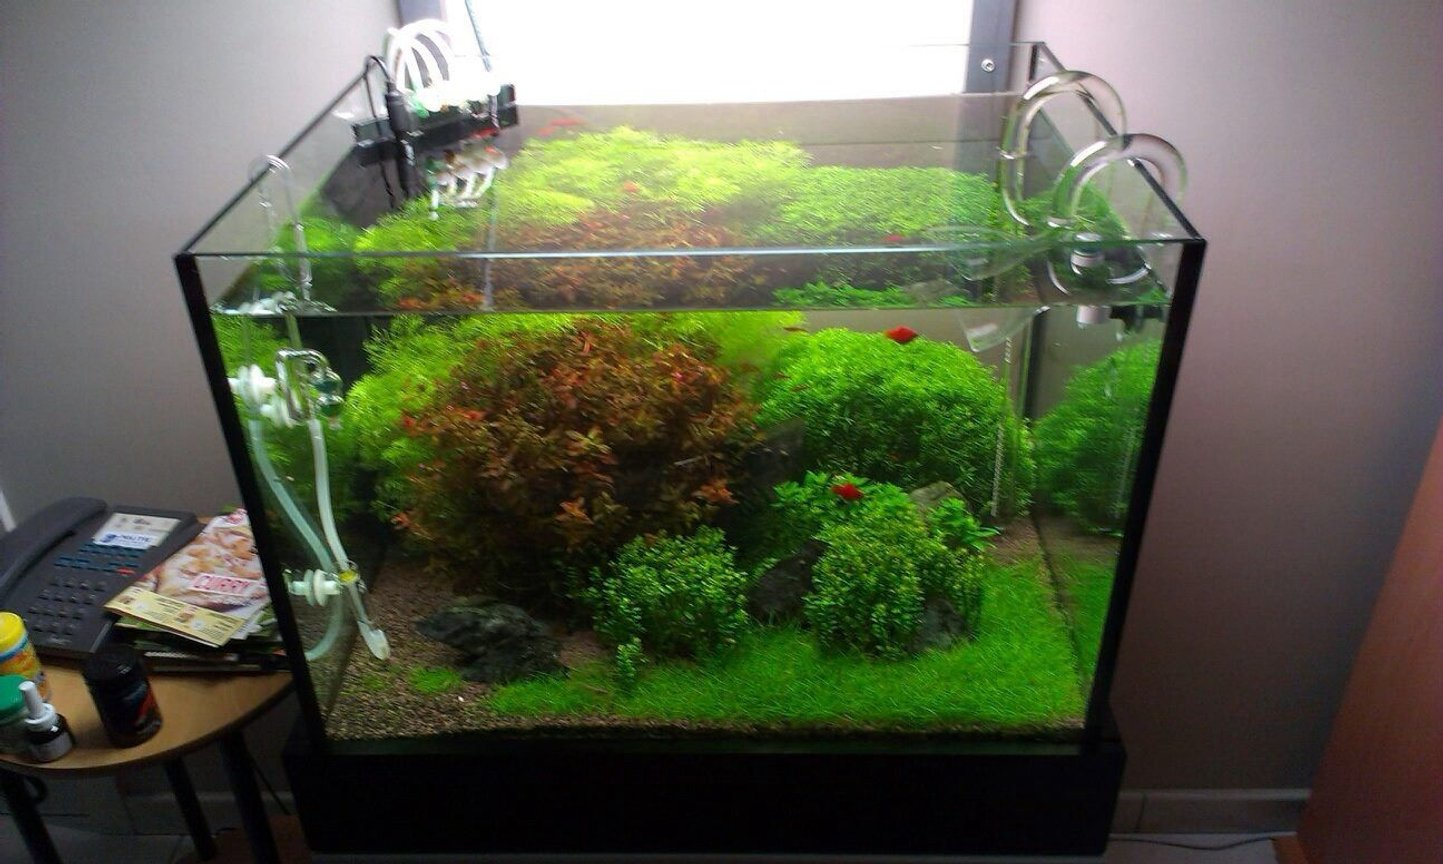 20 gallons planted tank (mostly live plants and fish) - Tank after weekly maintenance